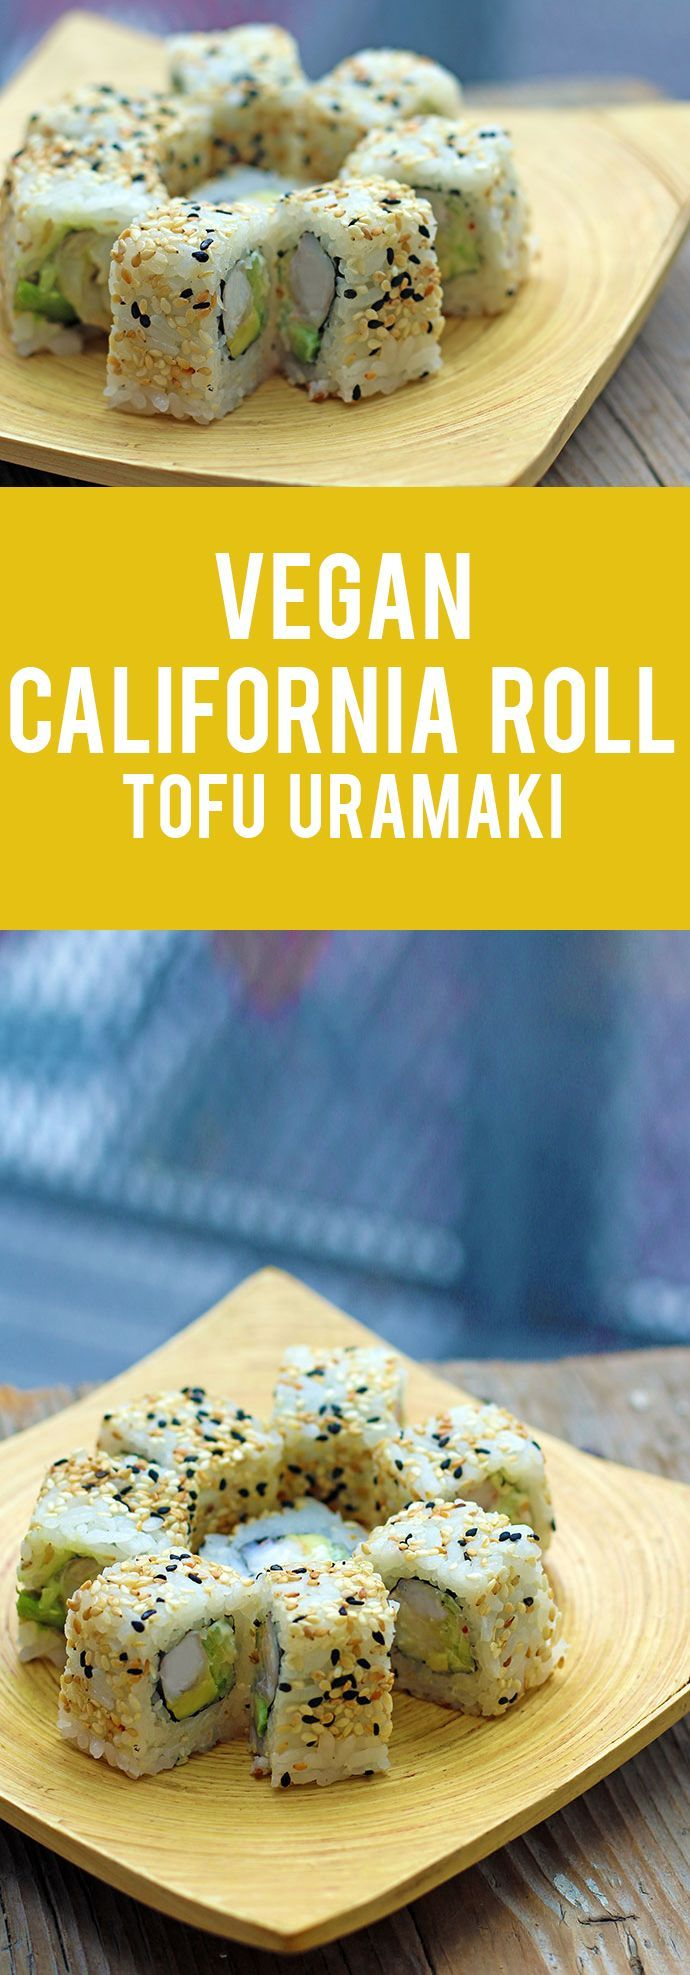 Learn how to make vegan California roll or tofu uramaki quickly and easily, by following this step by step recipe! It tastes very similar to the original crab meat California roll recipe! #california #sushi #tofu